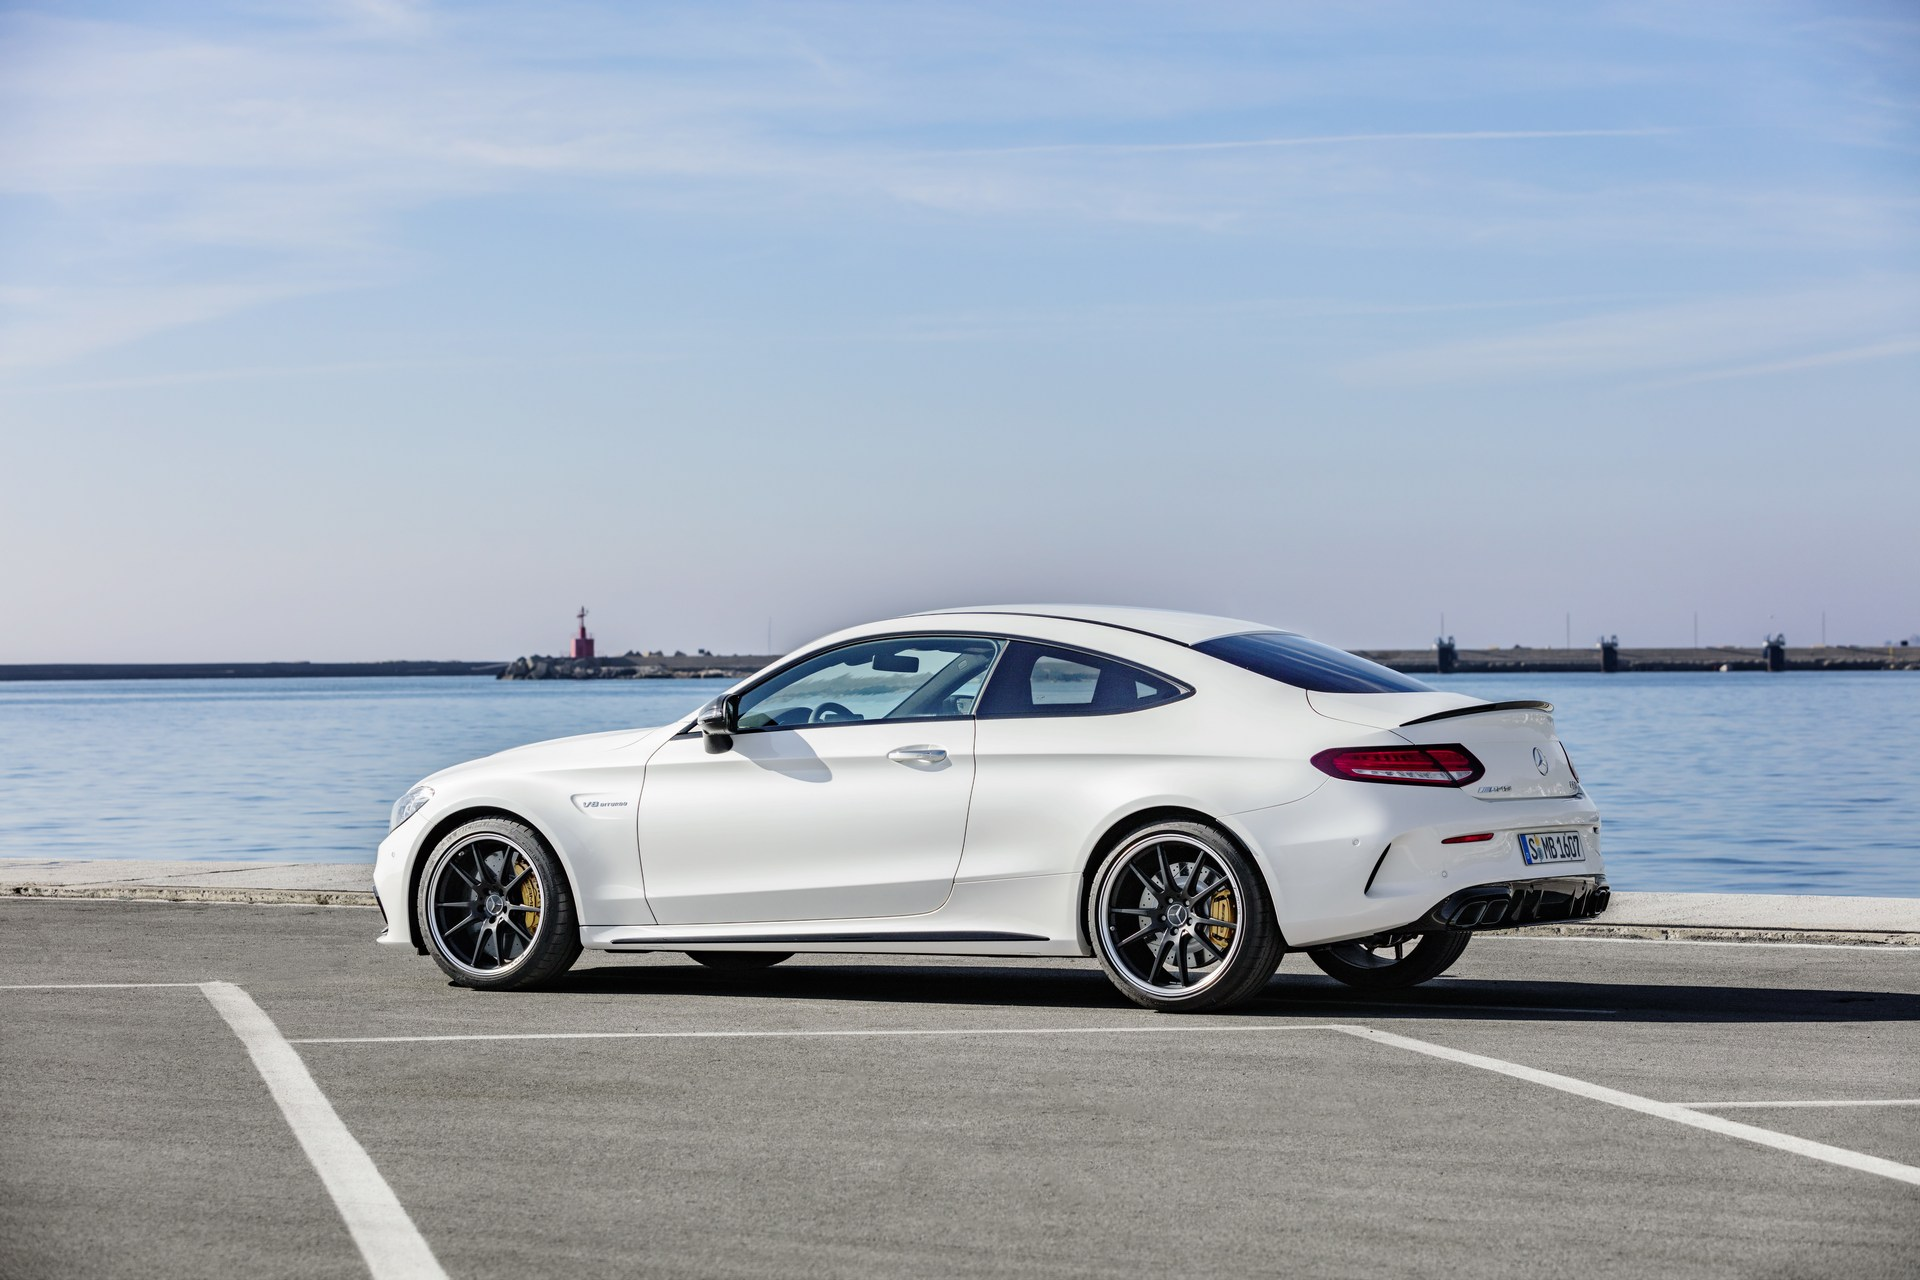 2019 mercedes amg c63 coupe debuts facelift look in new. Black Bedroom Furniture Sets. Home Design Ideas